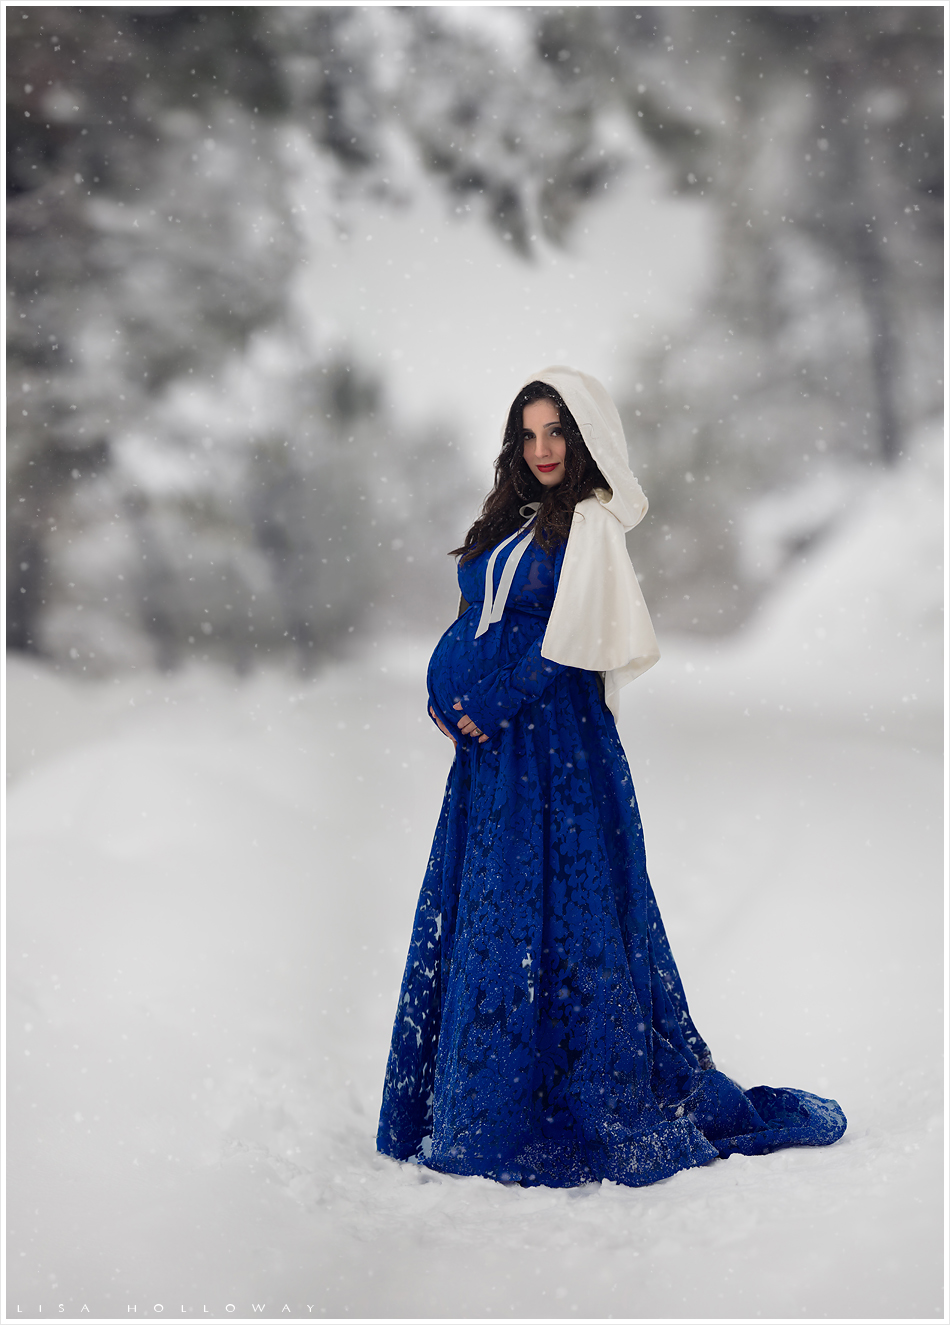 Beautiful pregnant woman with a royal blue dress and white cloak stands on a snowy road lined with snow covered trees. LJHolloway Photography is a Las Vegas Maternity Photographer.